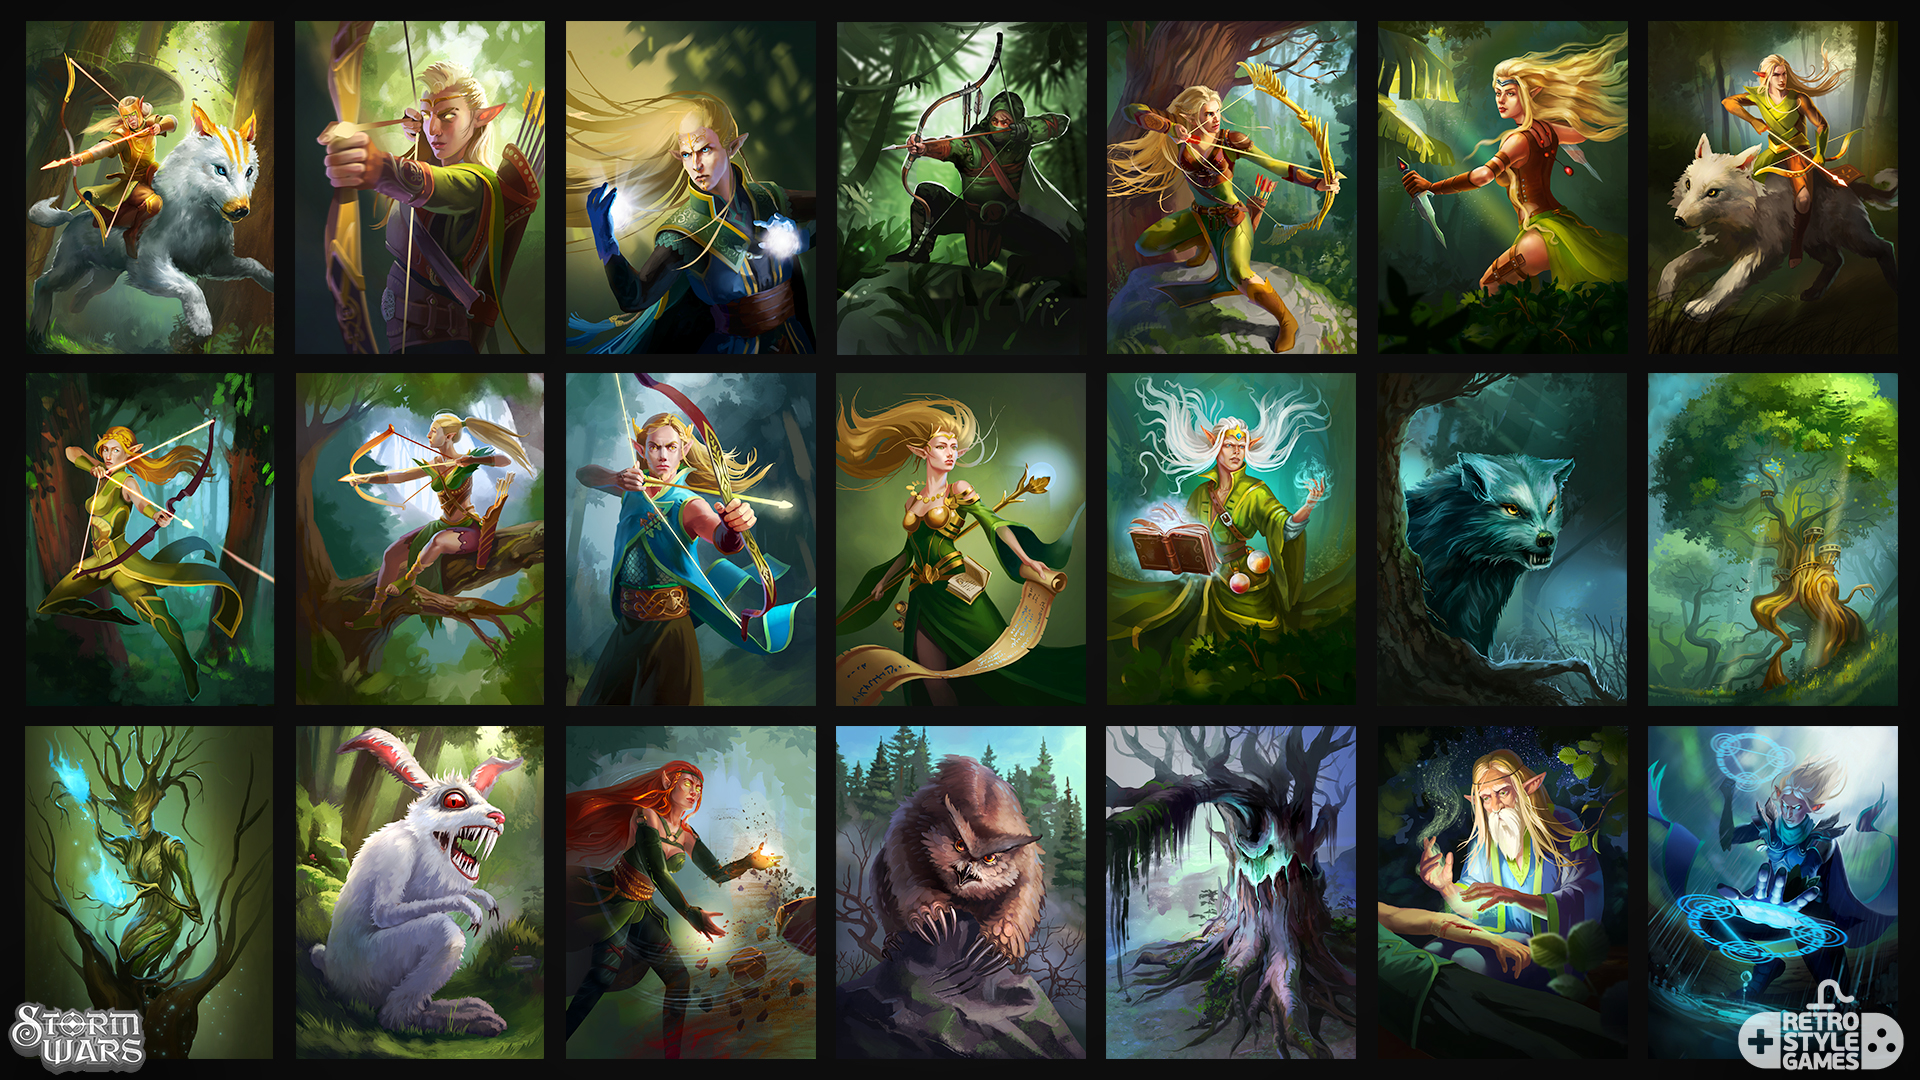 stormwars 2d high elves elf character illustrations set